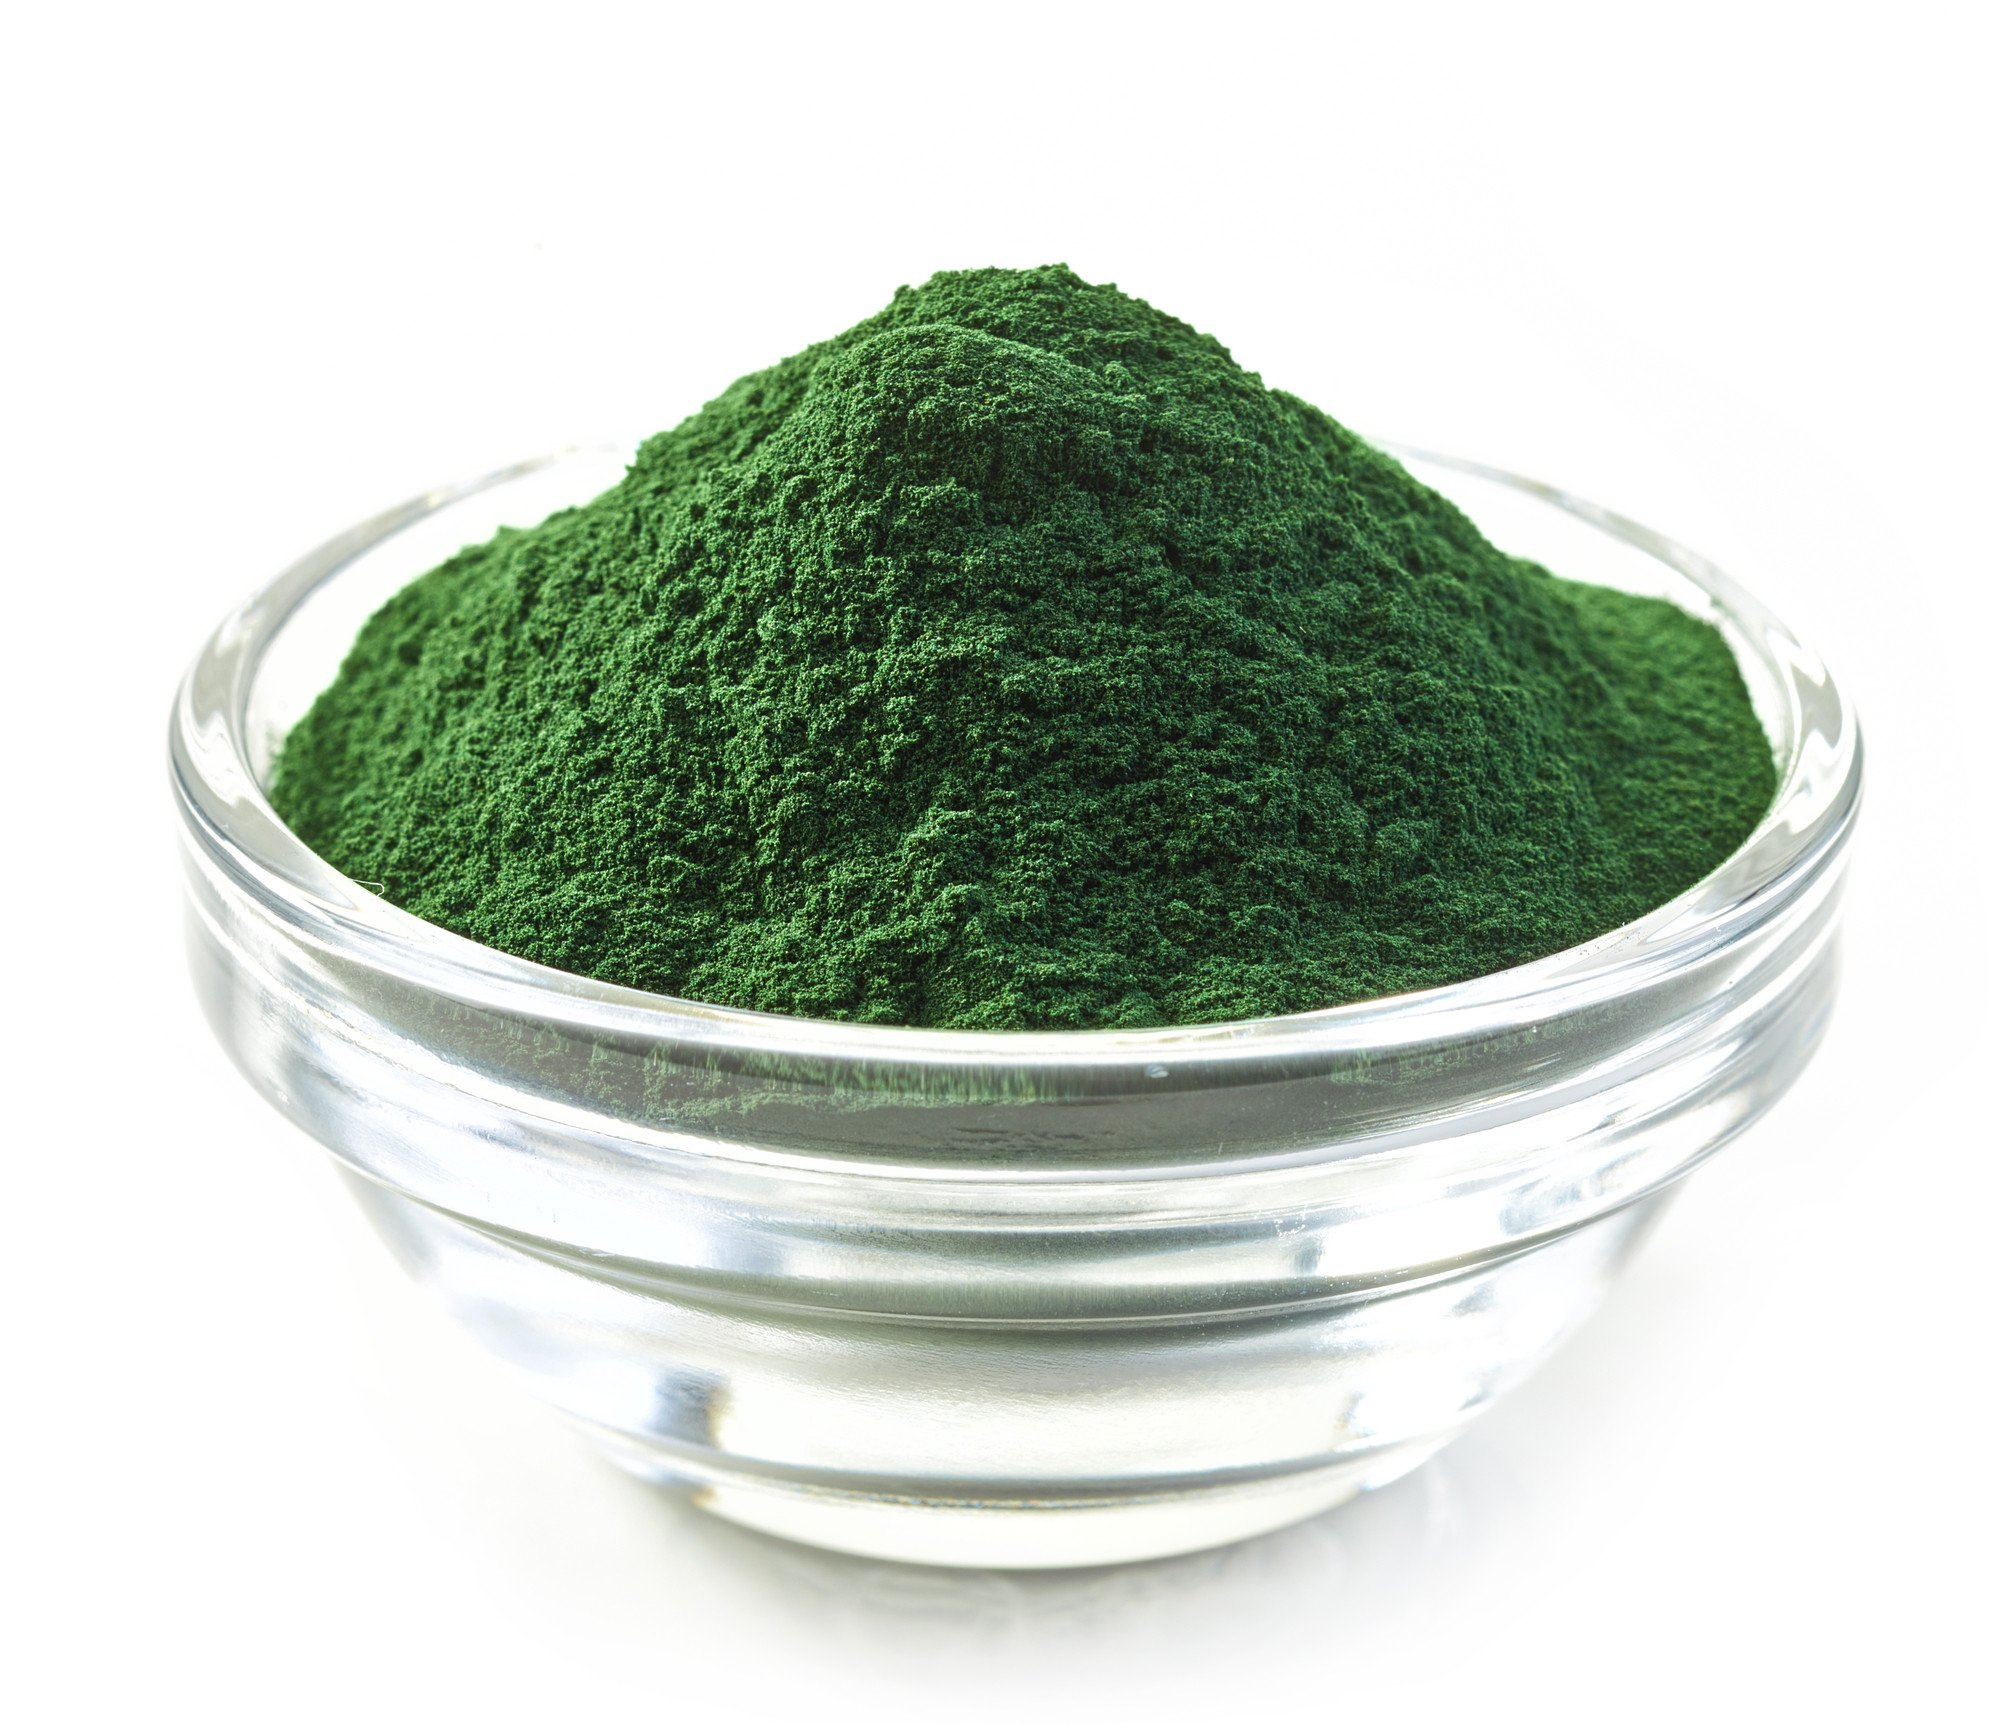 Spirulina Powder Market 2019-2027 Overview, Demand Status of Key Players, New Business Plans, Upcoming Strategies and Forecast